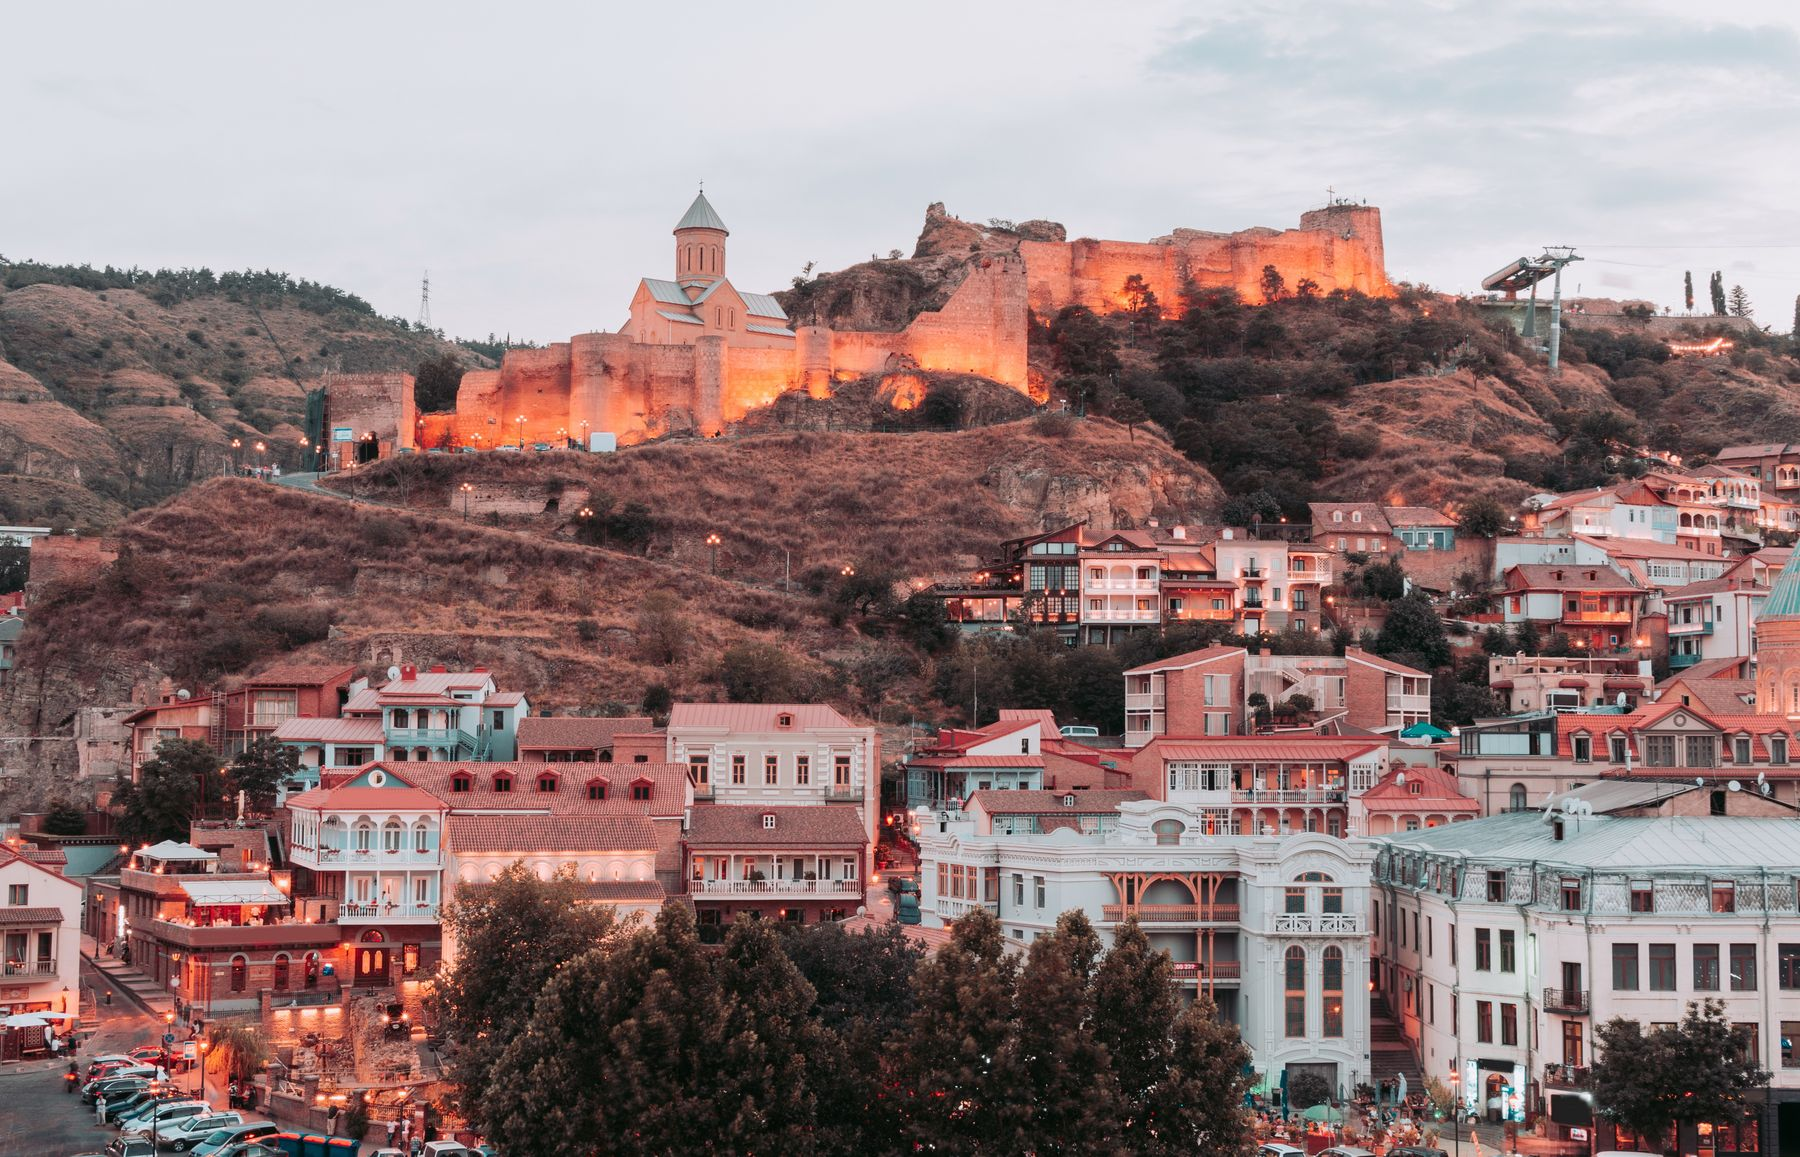 Photo shows the skyline of Tblisi, Georgia (one of our unexected destinations) at dusk, with its white and terraccotta coloured buildings